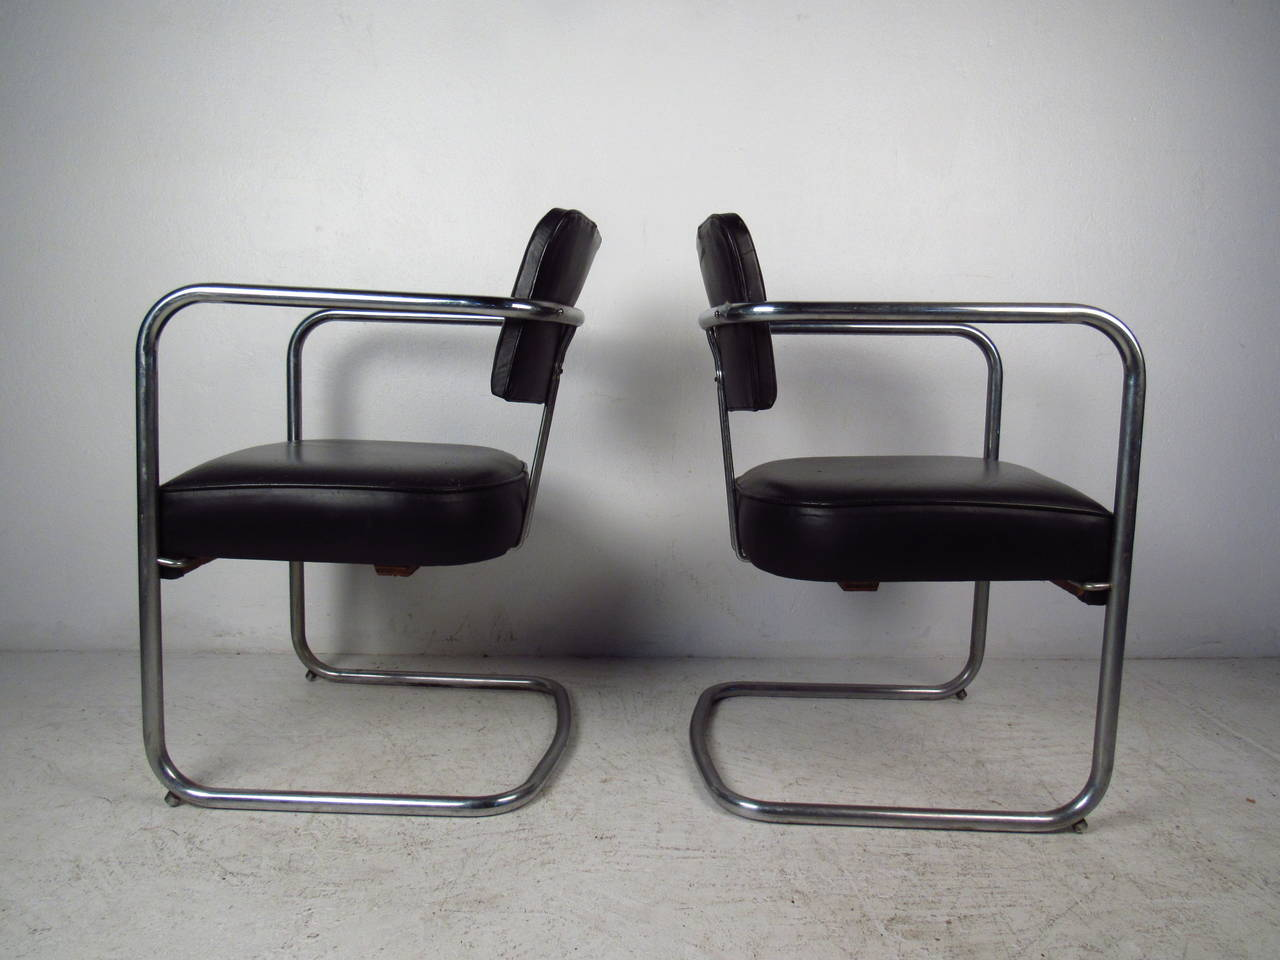 20th Century Set of Four Italian Black Leather and Chrome Chairs For Sale